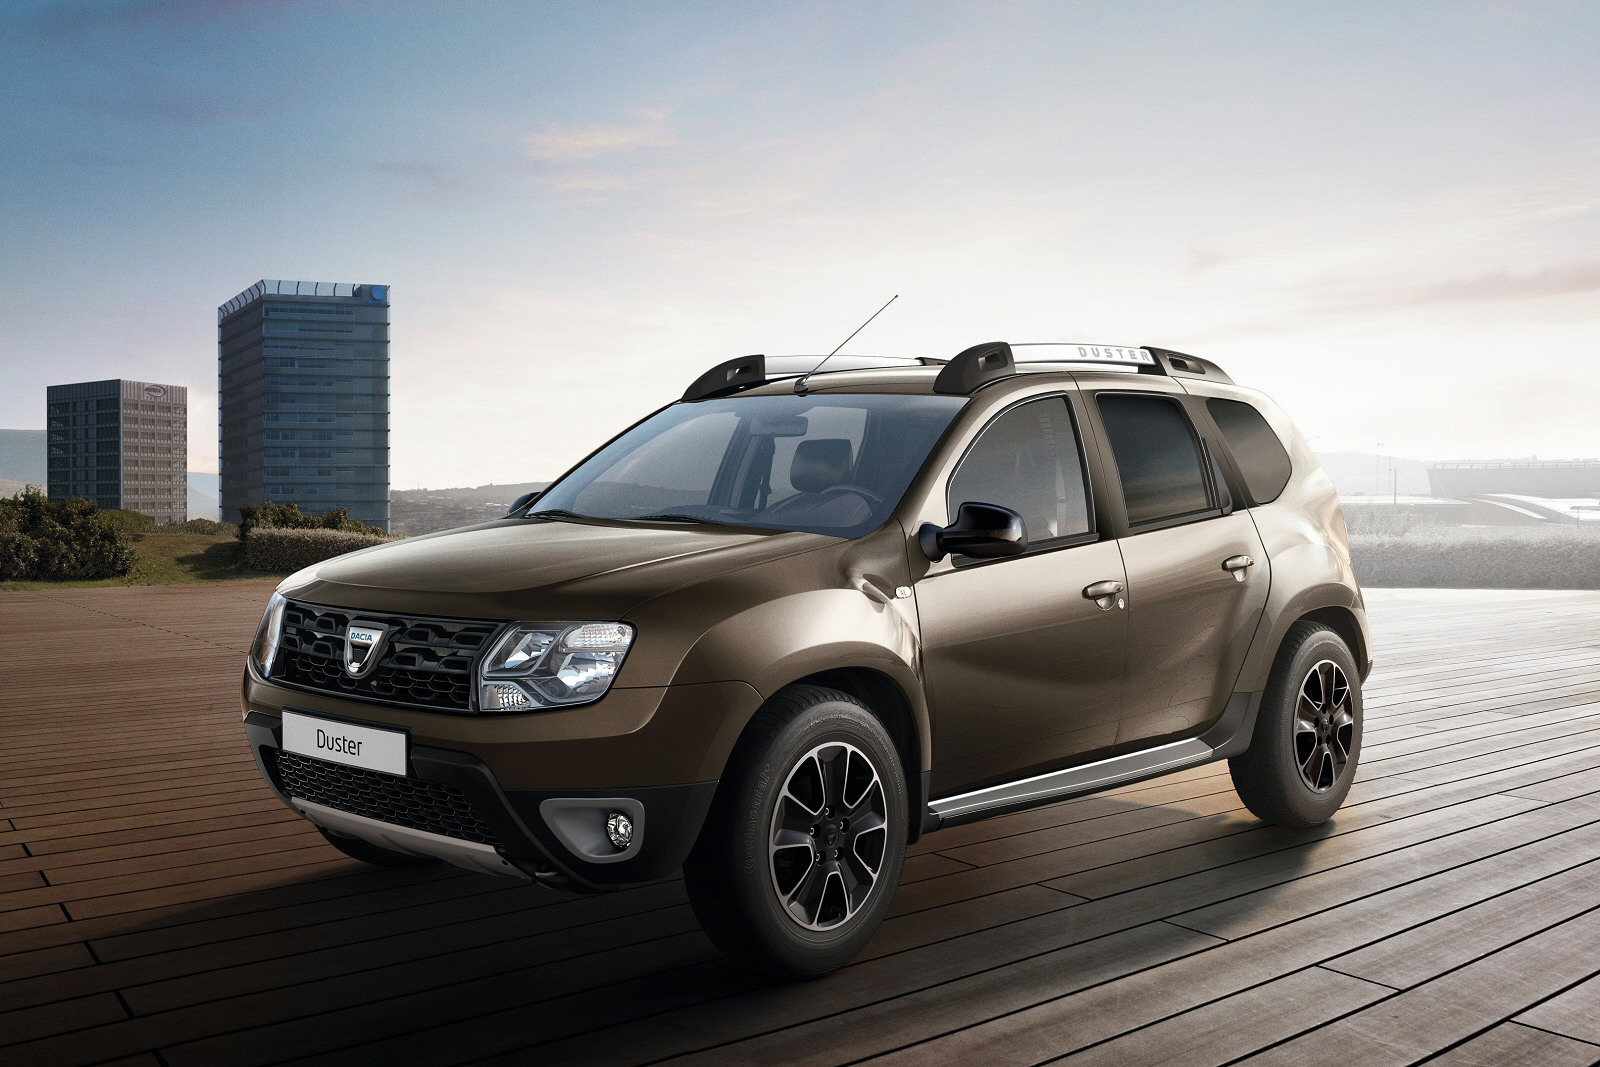 new dacia duster 1 2 tce 125 laureate 5dr petrol estate for sale bristol street. Black Bedroom Furniture Sets. Home Design Ideas